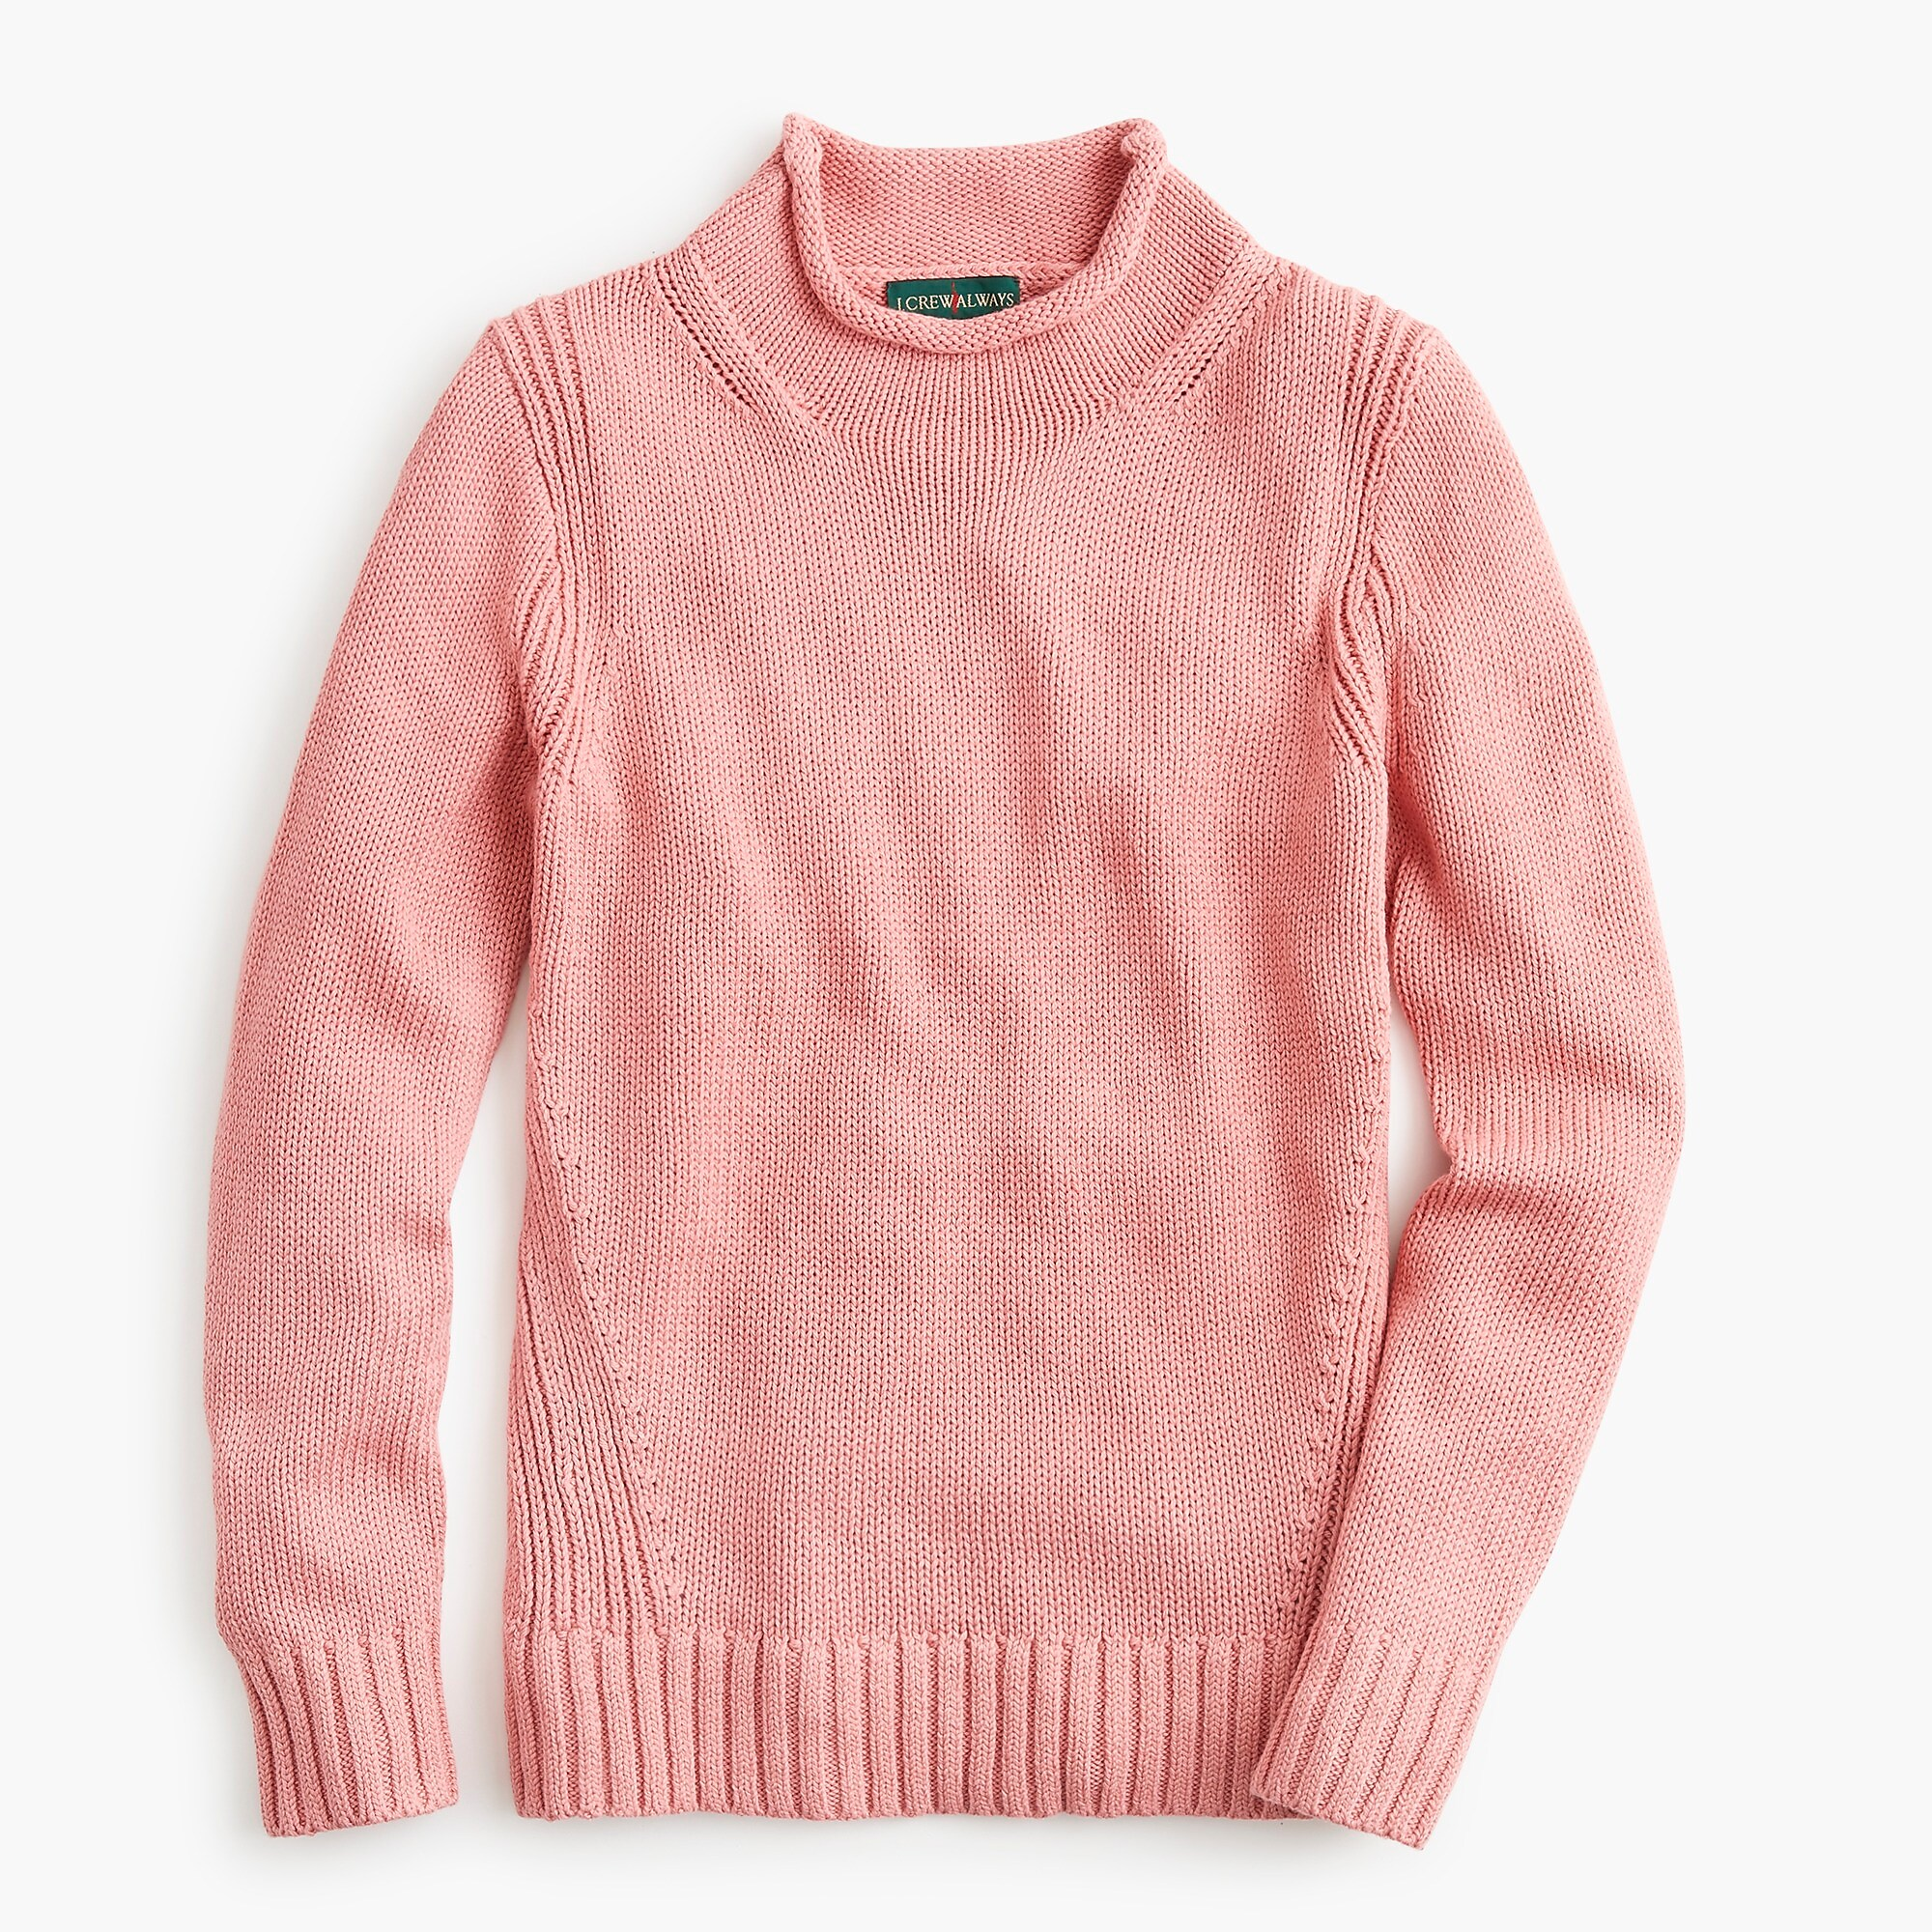 Early Access to J.Crew's Cyber Monday Sale